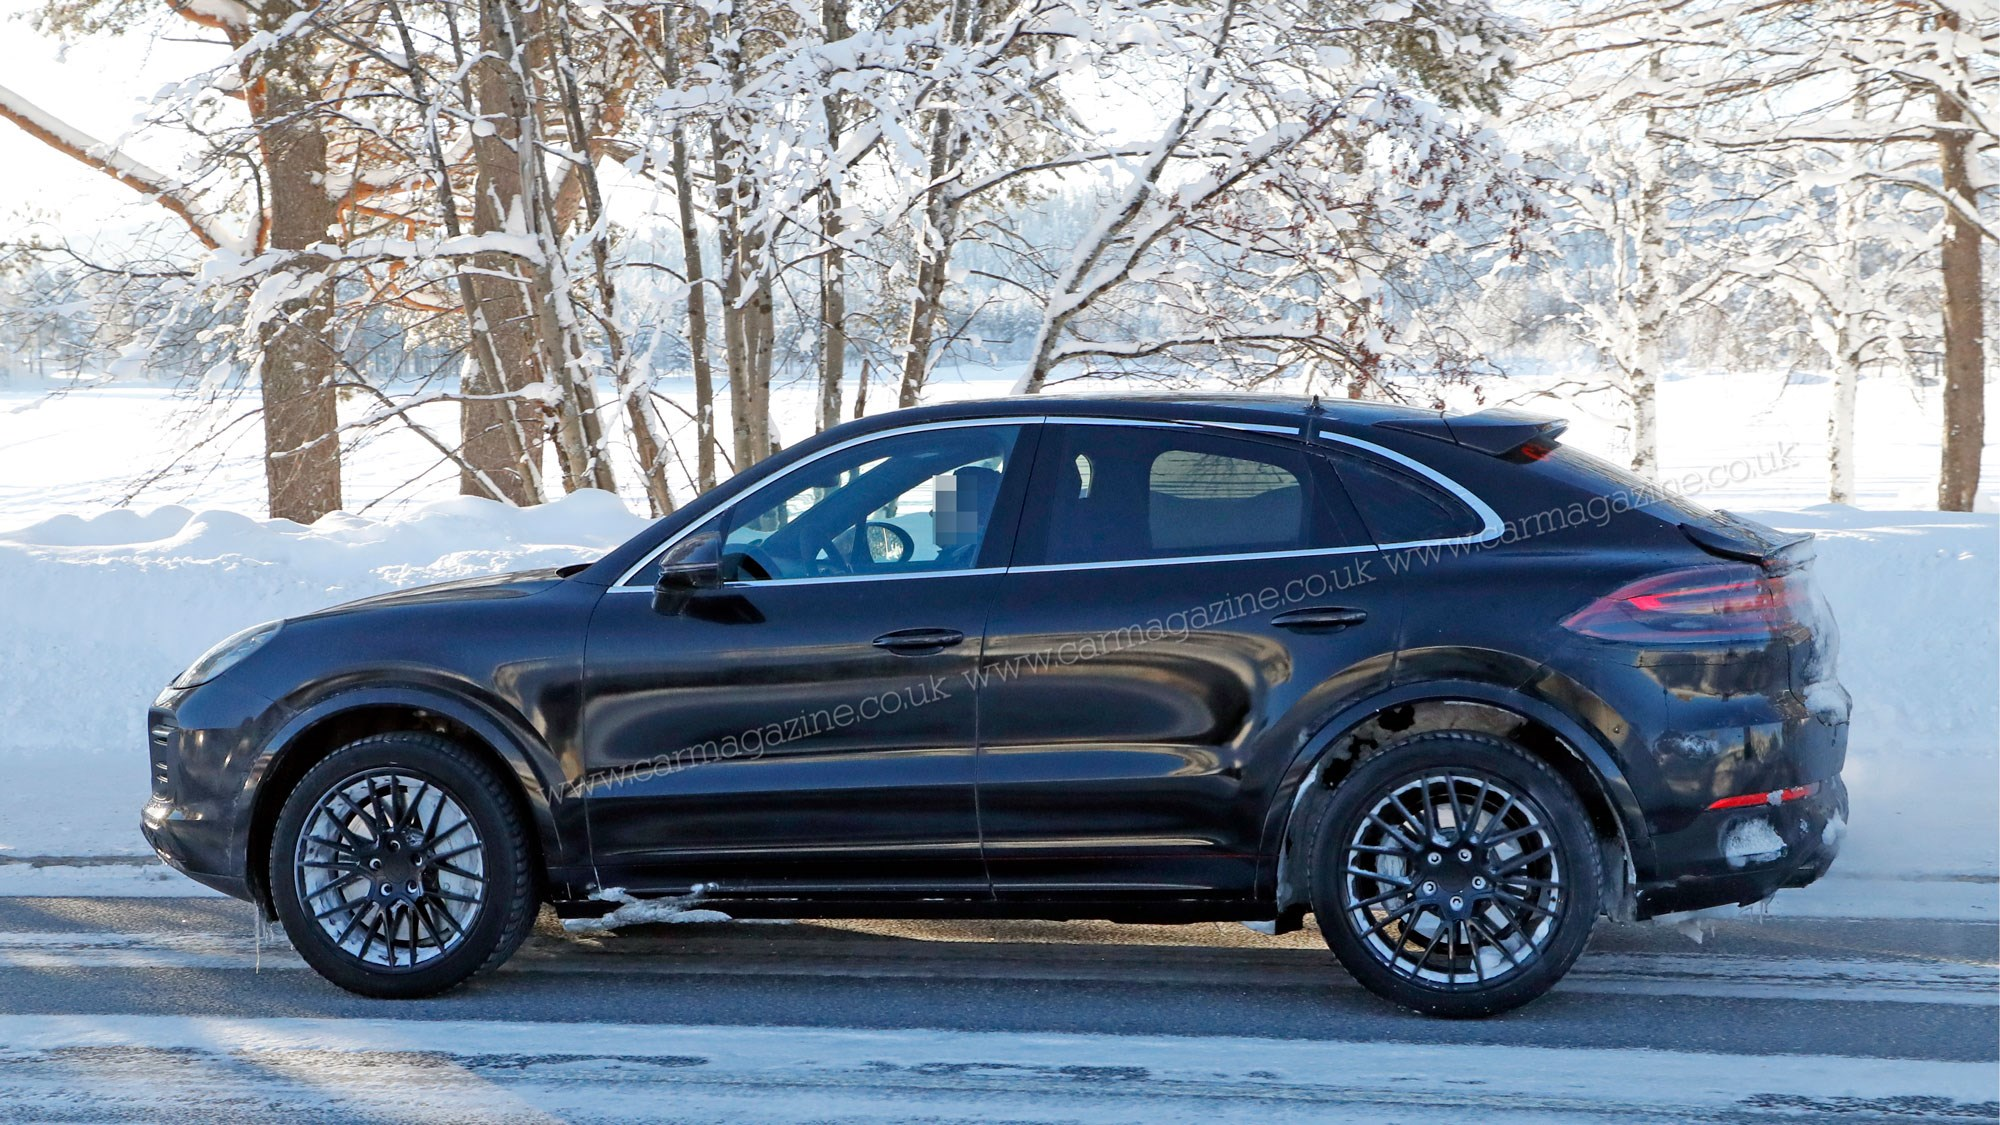 Porsche Cayenne Coupe Sporty Suv Spotted Winter Testing Car Magazine